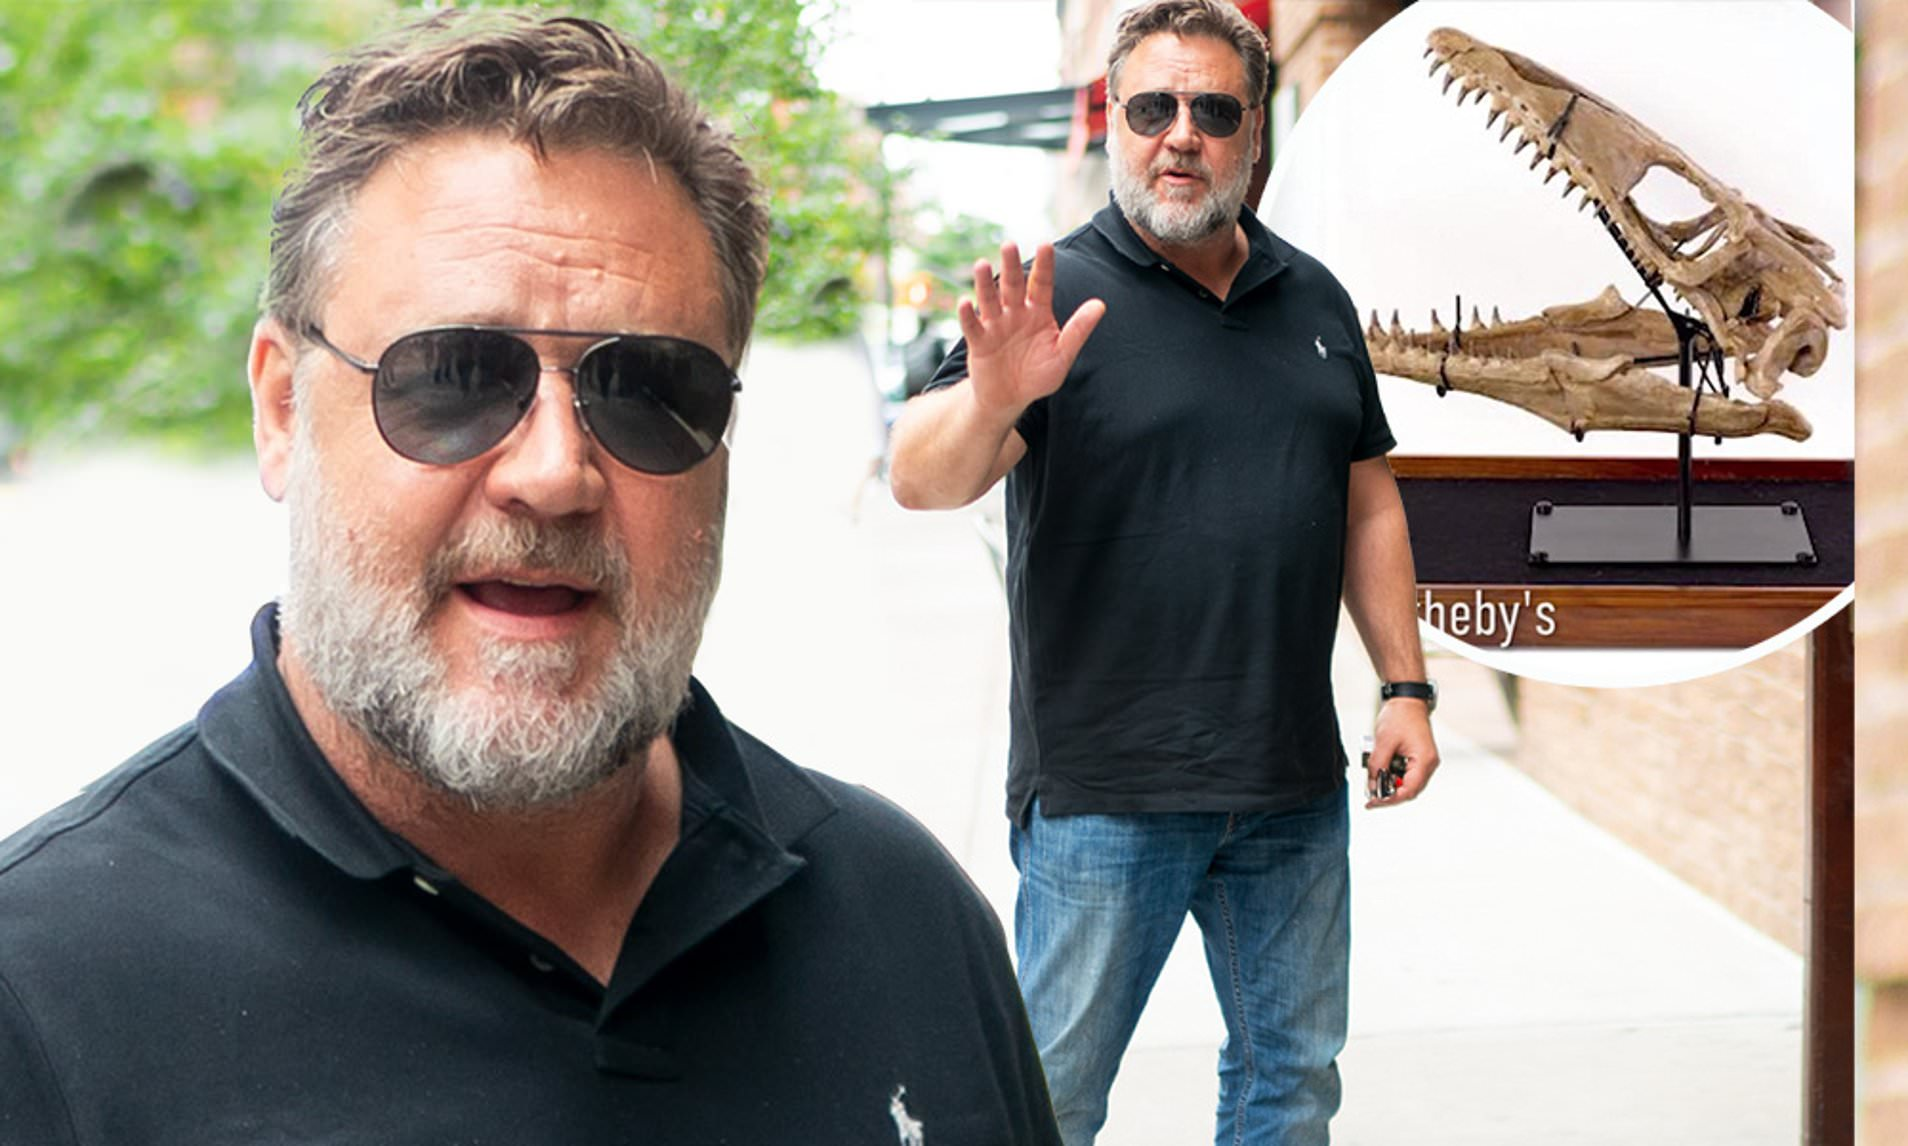 Russell Crowe tells the tale of his drunken purchase of a dinosaur's head